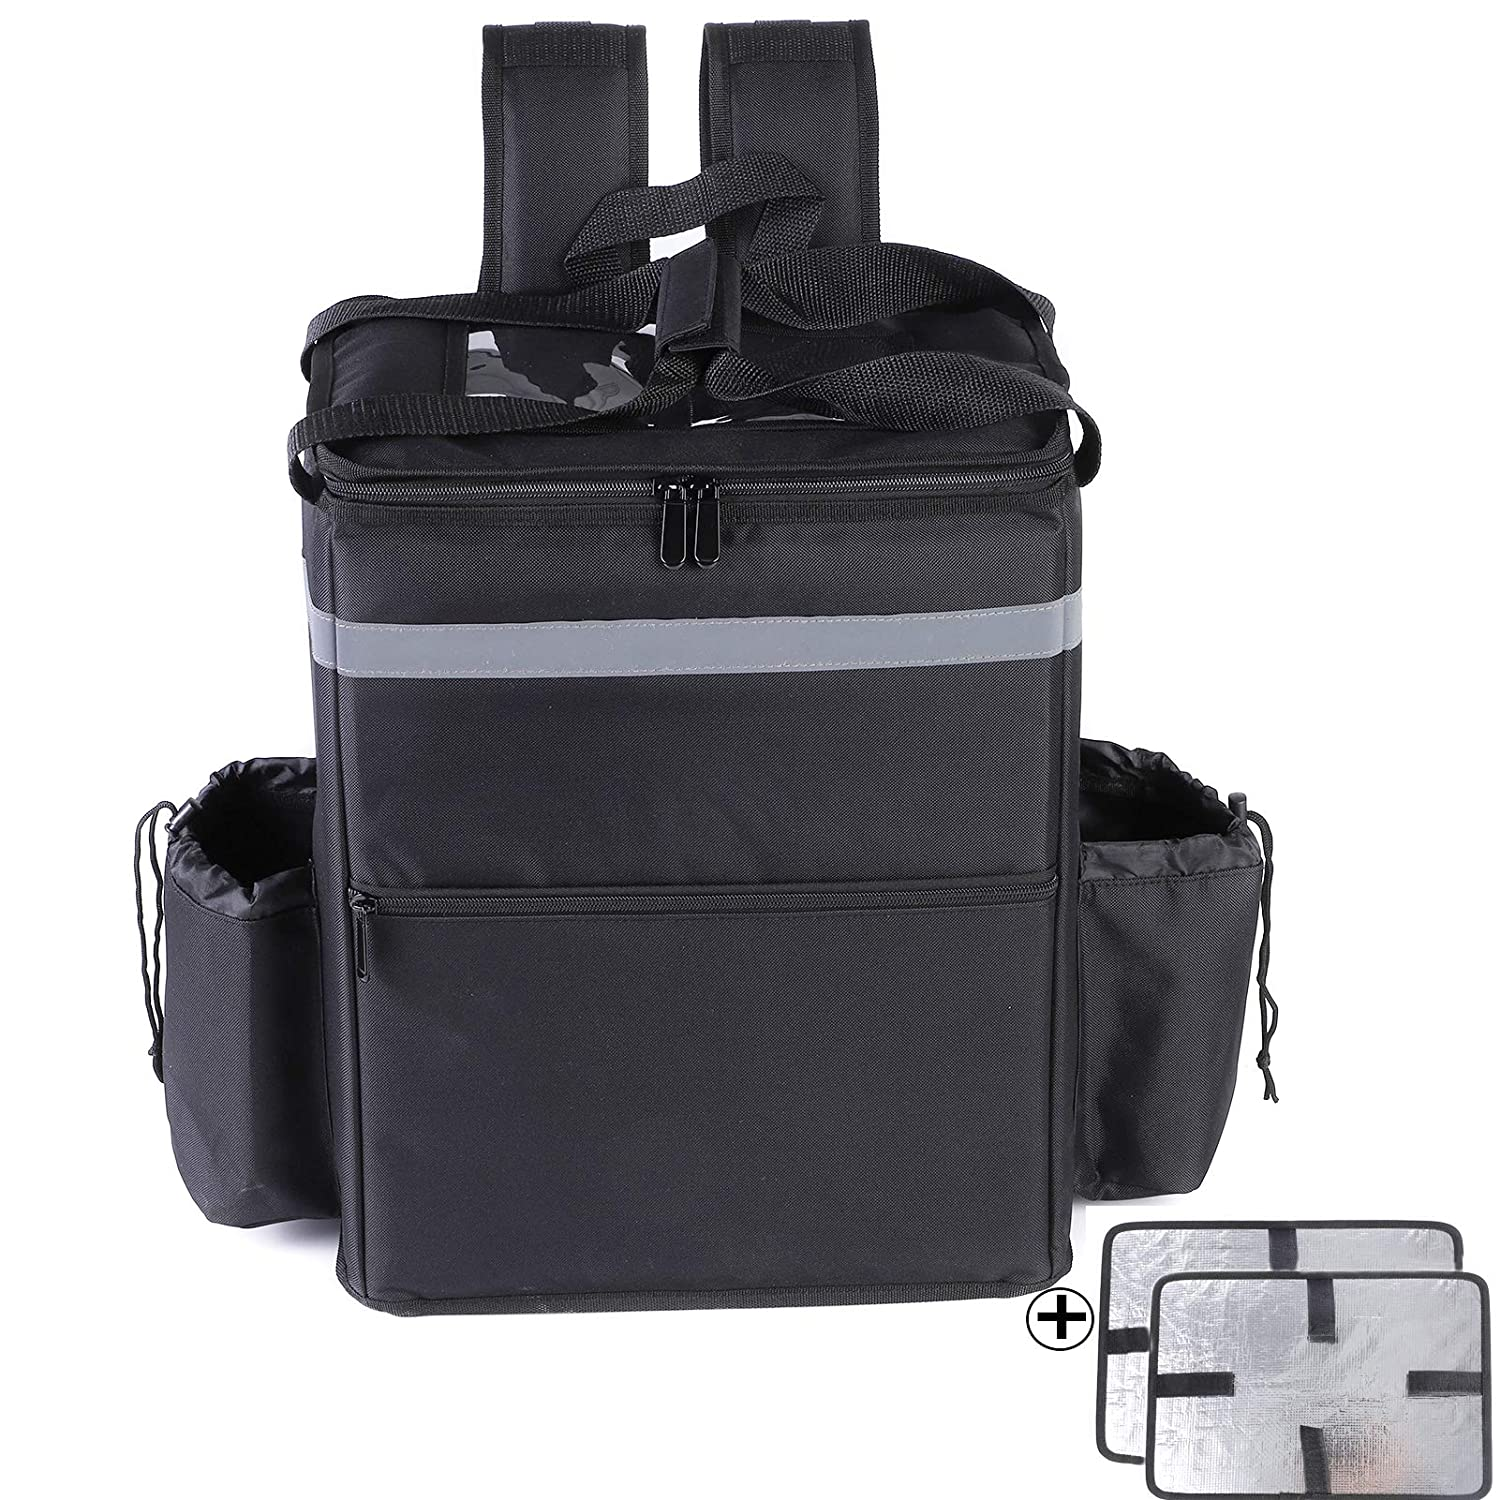 Insulated Food Delivery Bag, Food Delivery Backpack, Leak-Proof Thermal Backpack,Soft Sided Cooler Grocery Backpack for Take Out/Travel